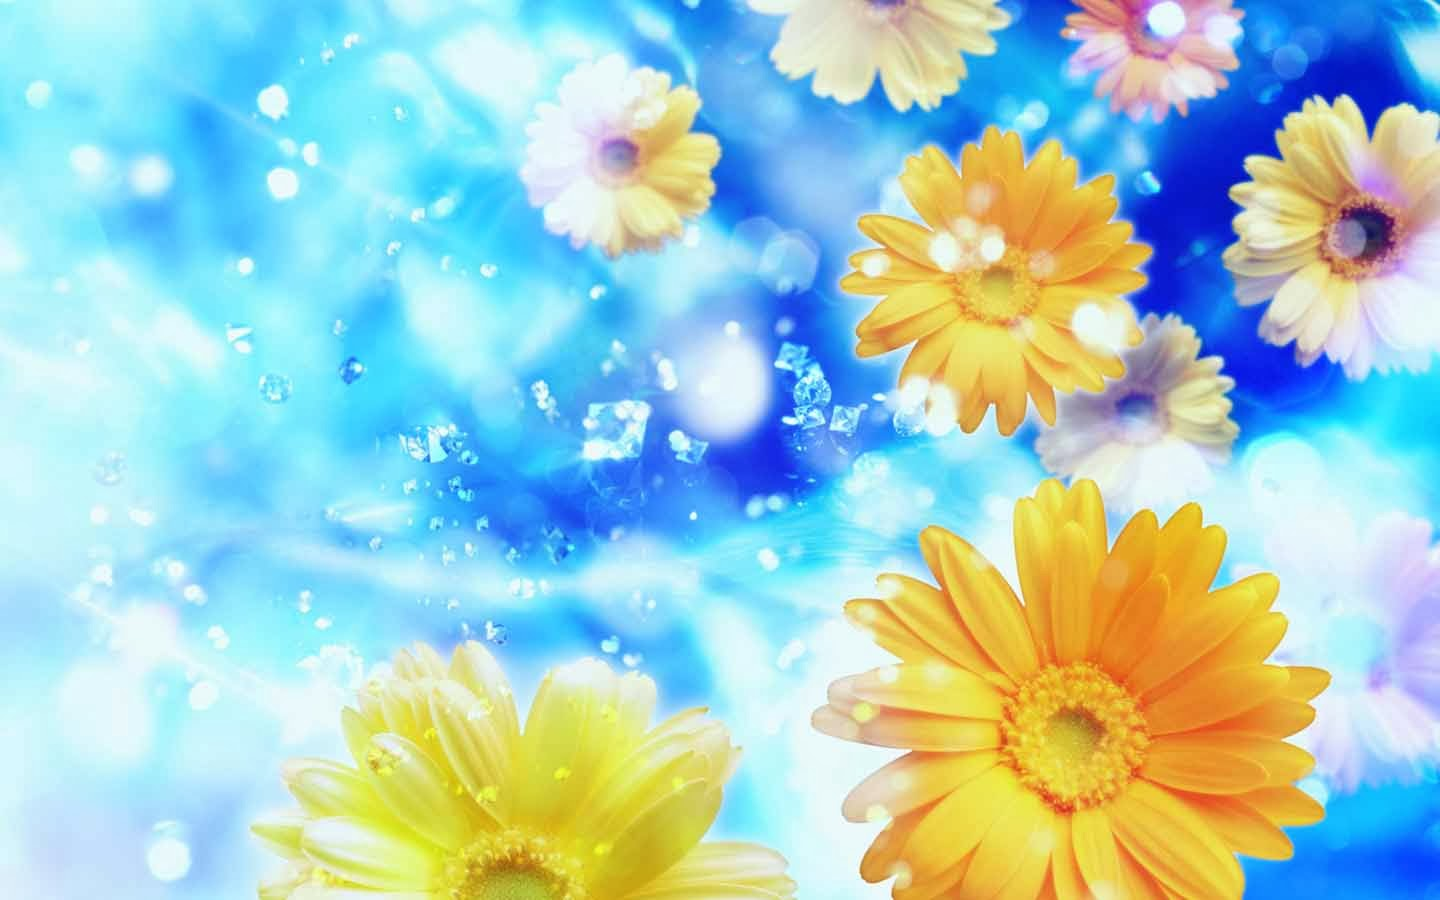 Falling In Love Hd Wallpapers Hq Wallpapers Fantasy Flower Wallpapers